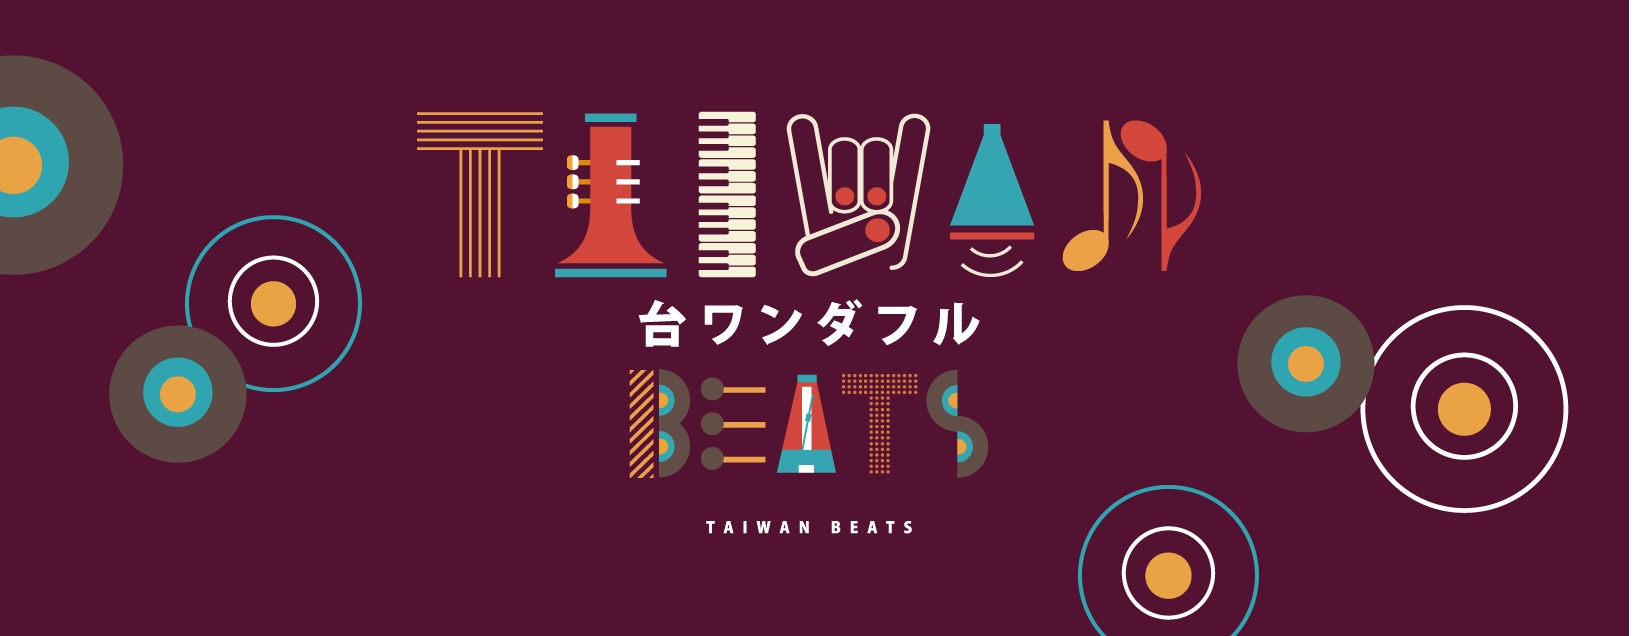 Four Taiwan music acts set to perform in Tokyo and Okinawa[另開新視窗]